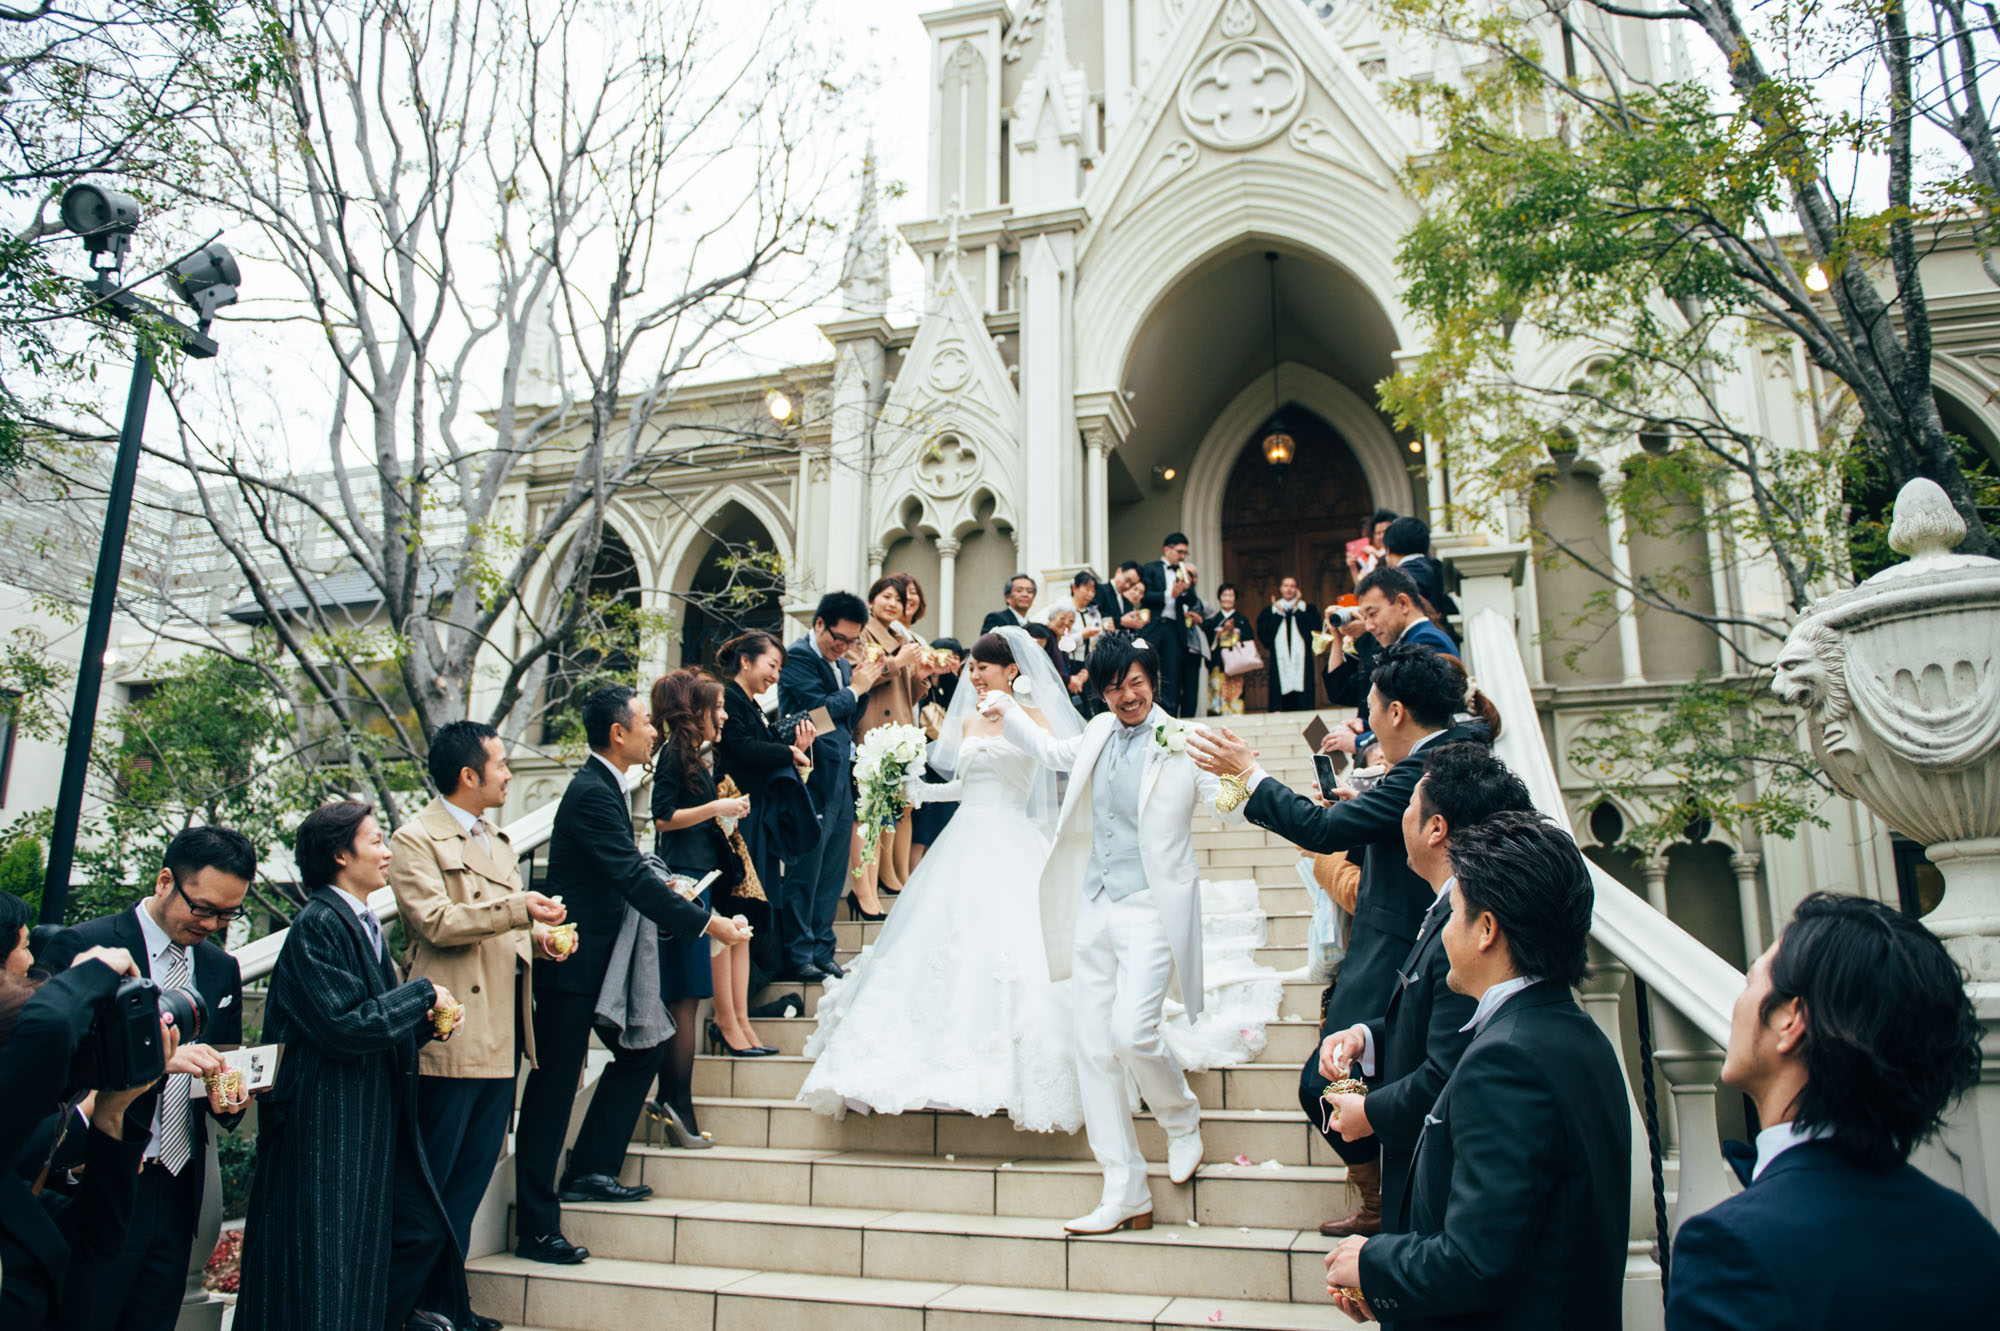 nagoya wedding60